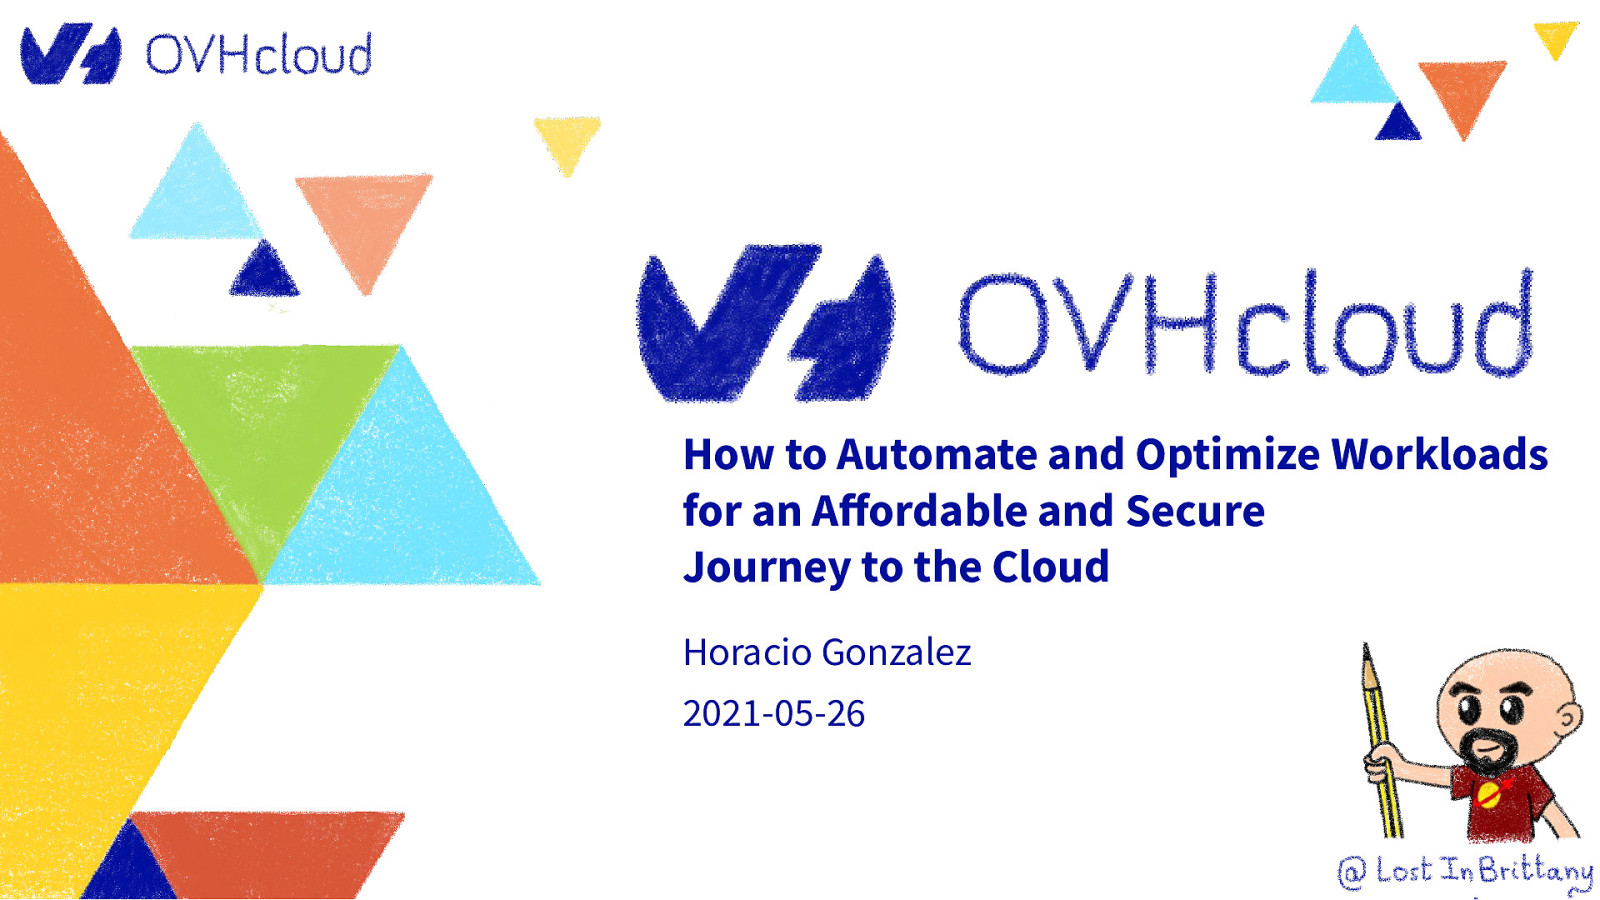 How to Automate and Optimize Workloads for an Affordable and Secure Journey to the Cloud